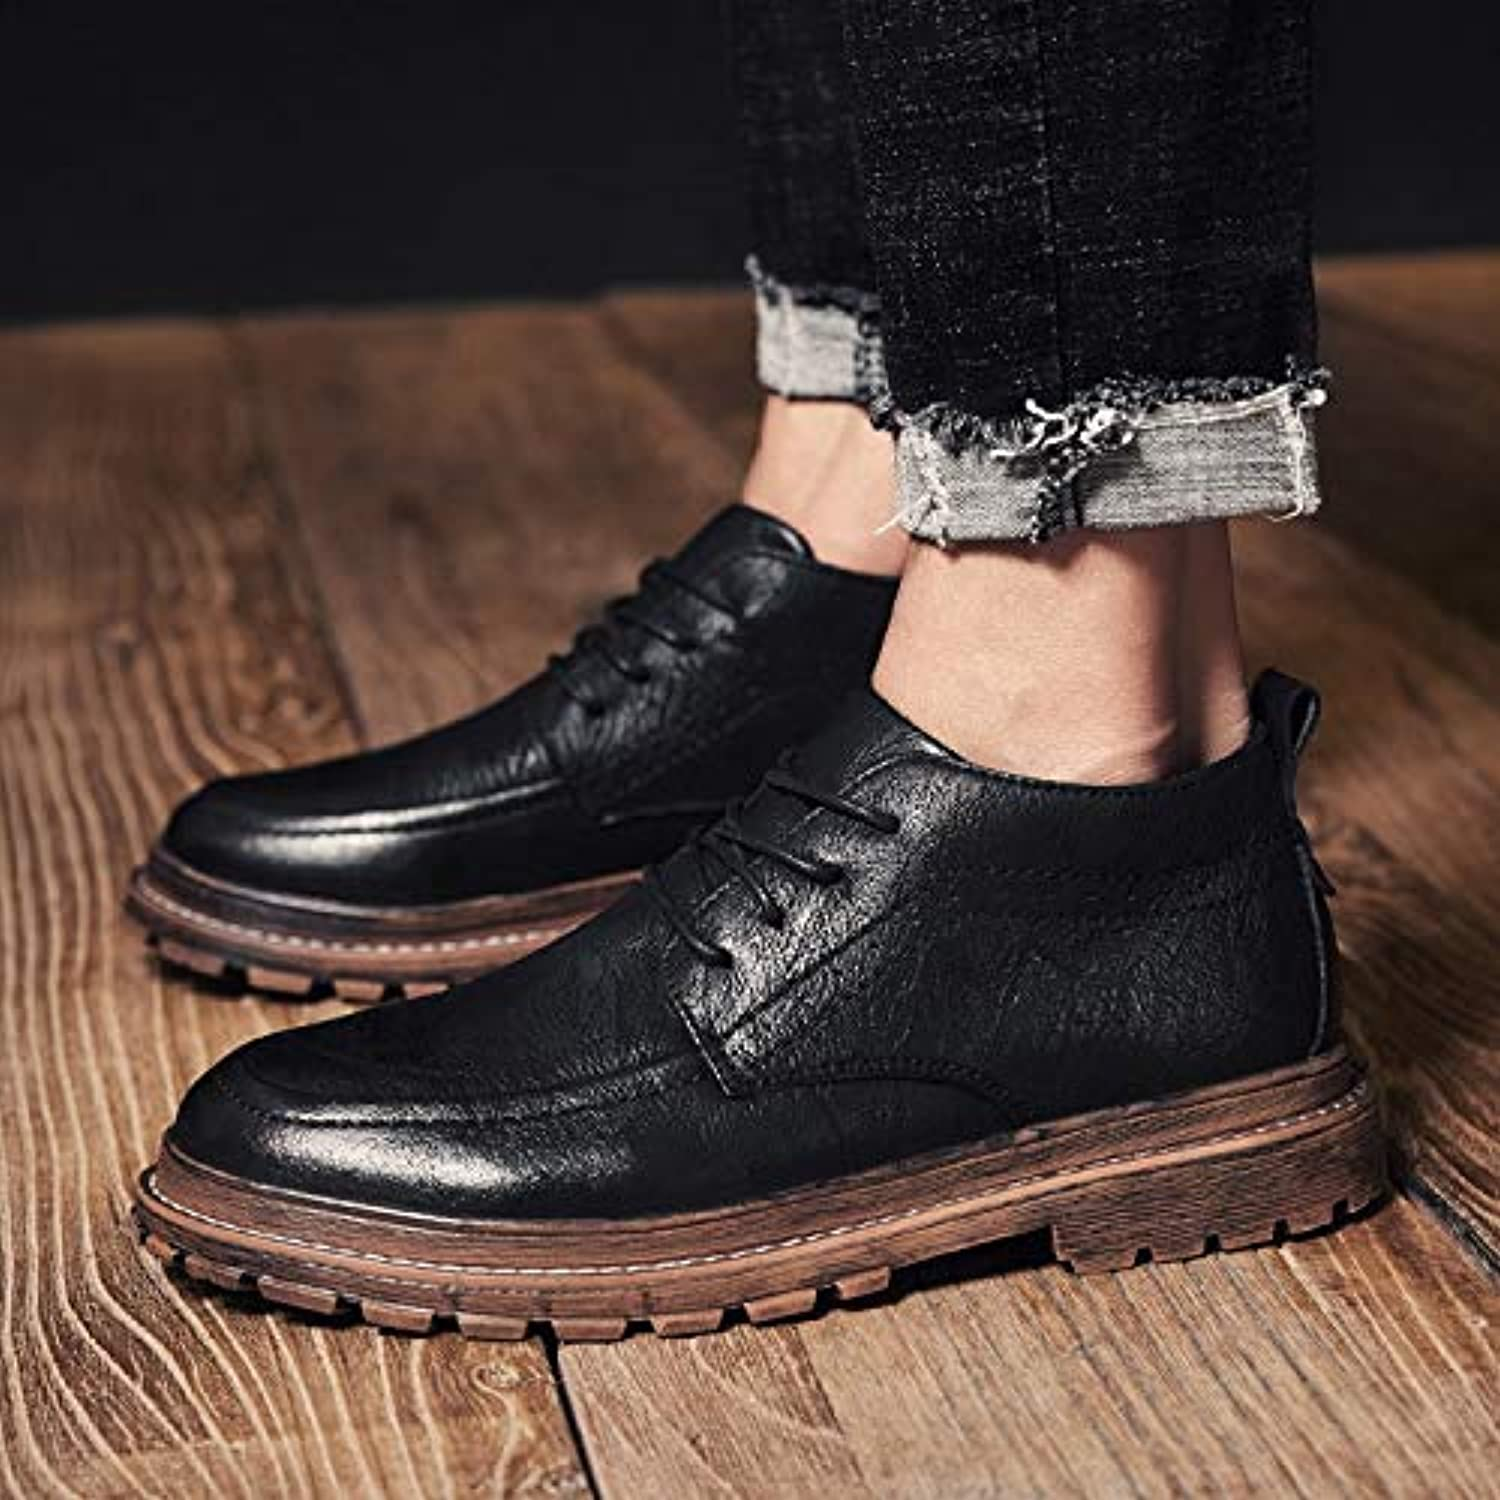 LOVDRAM Men'S shoes Autumn And Winter Men'S shoes High-Top shoes Men'S Wild Casual Fashion Retro Martin Boots